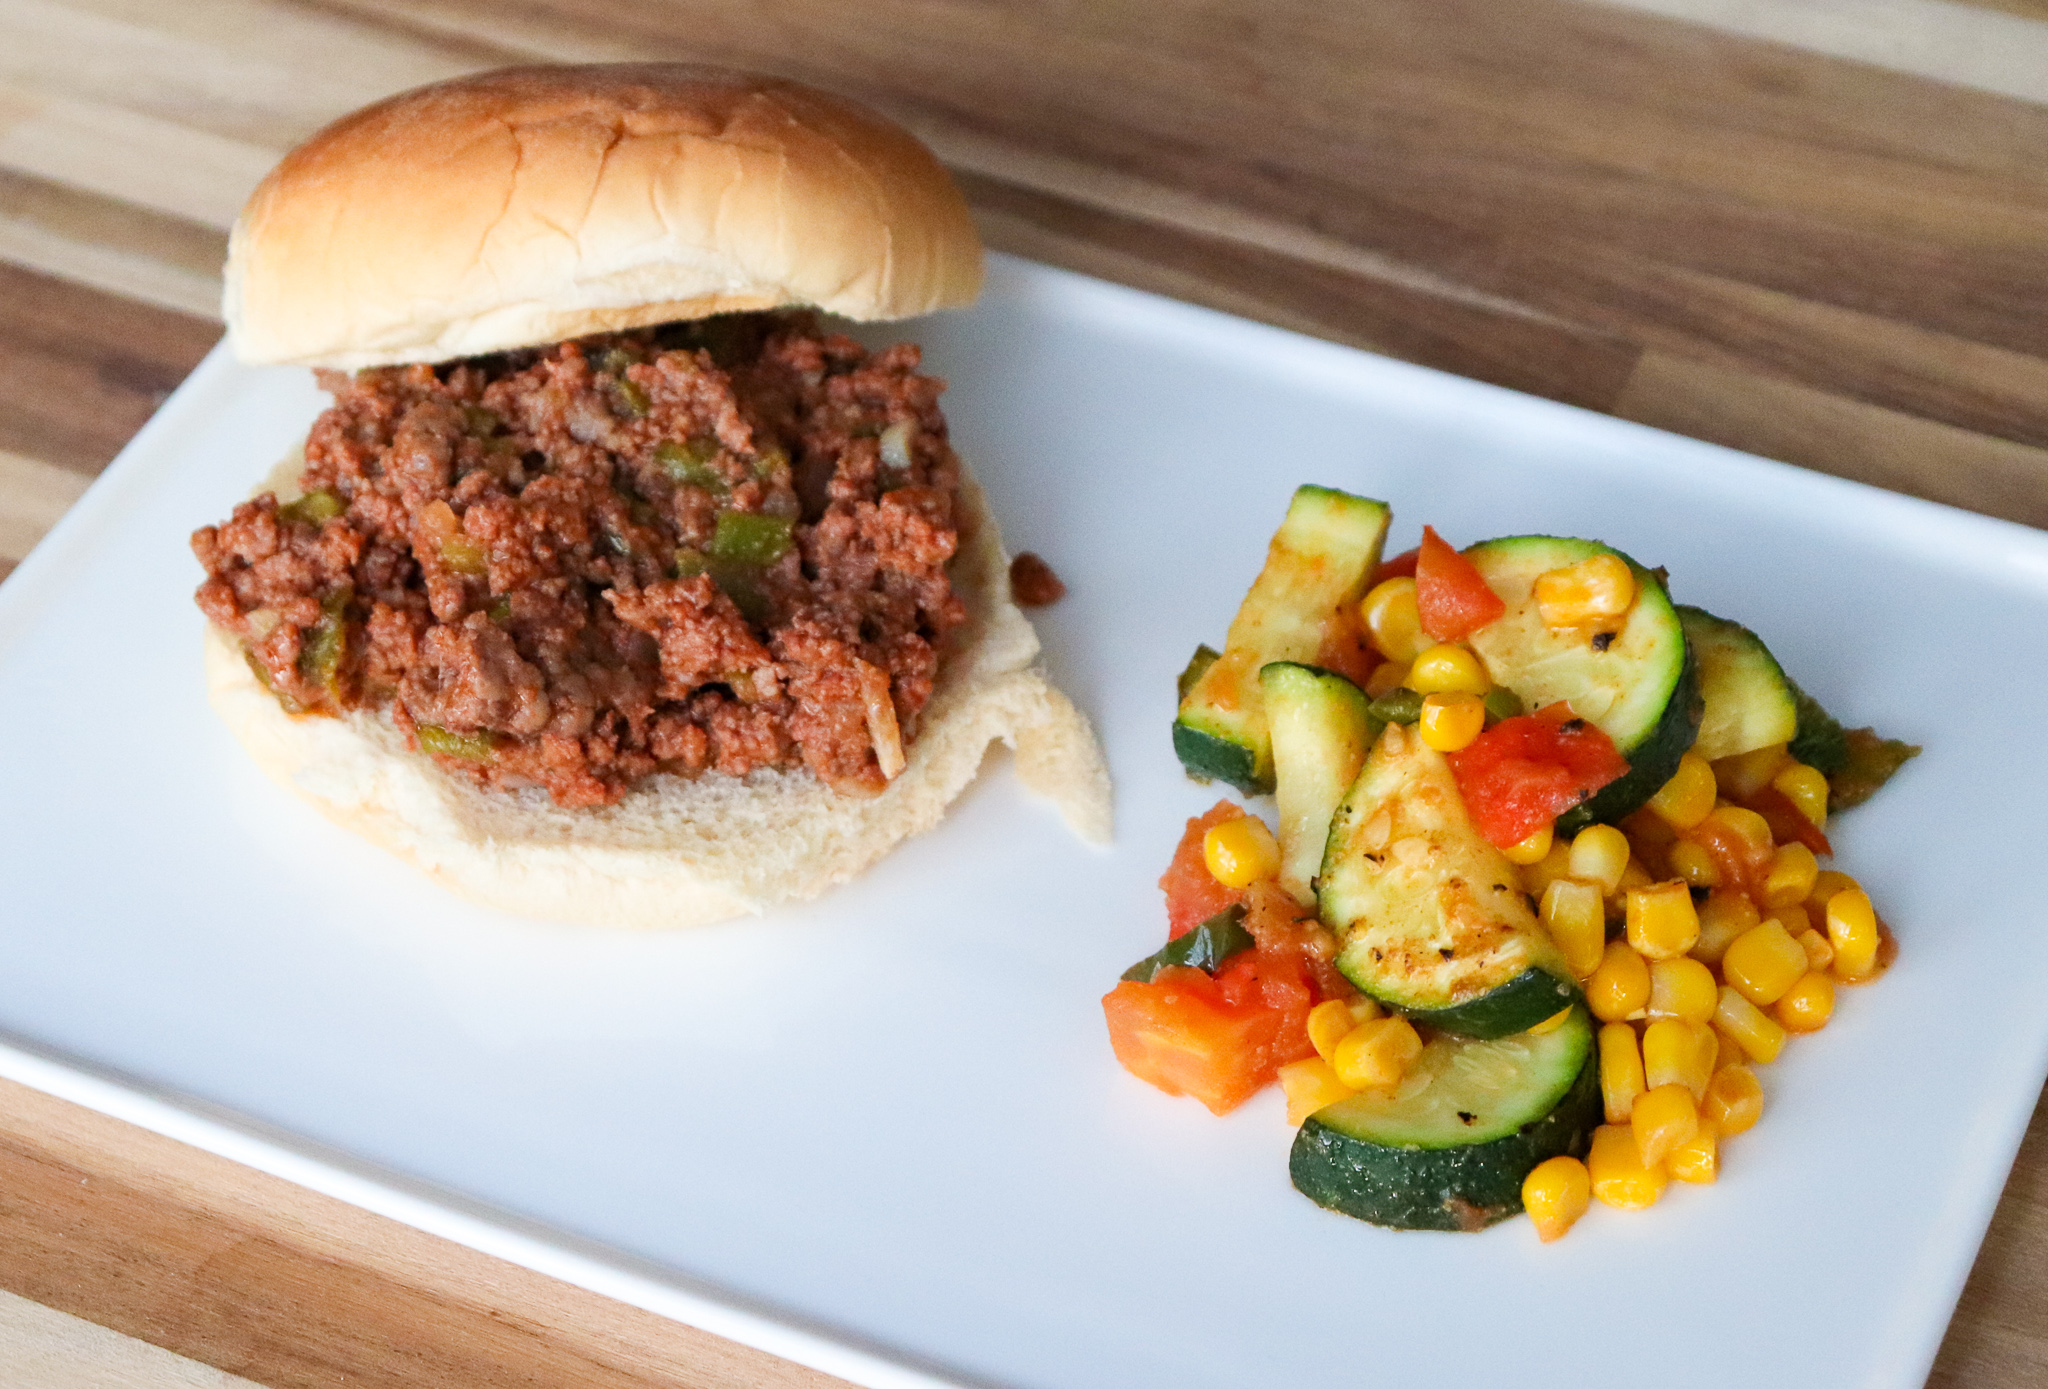 Green Chile Sloppy Joes